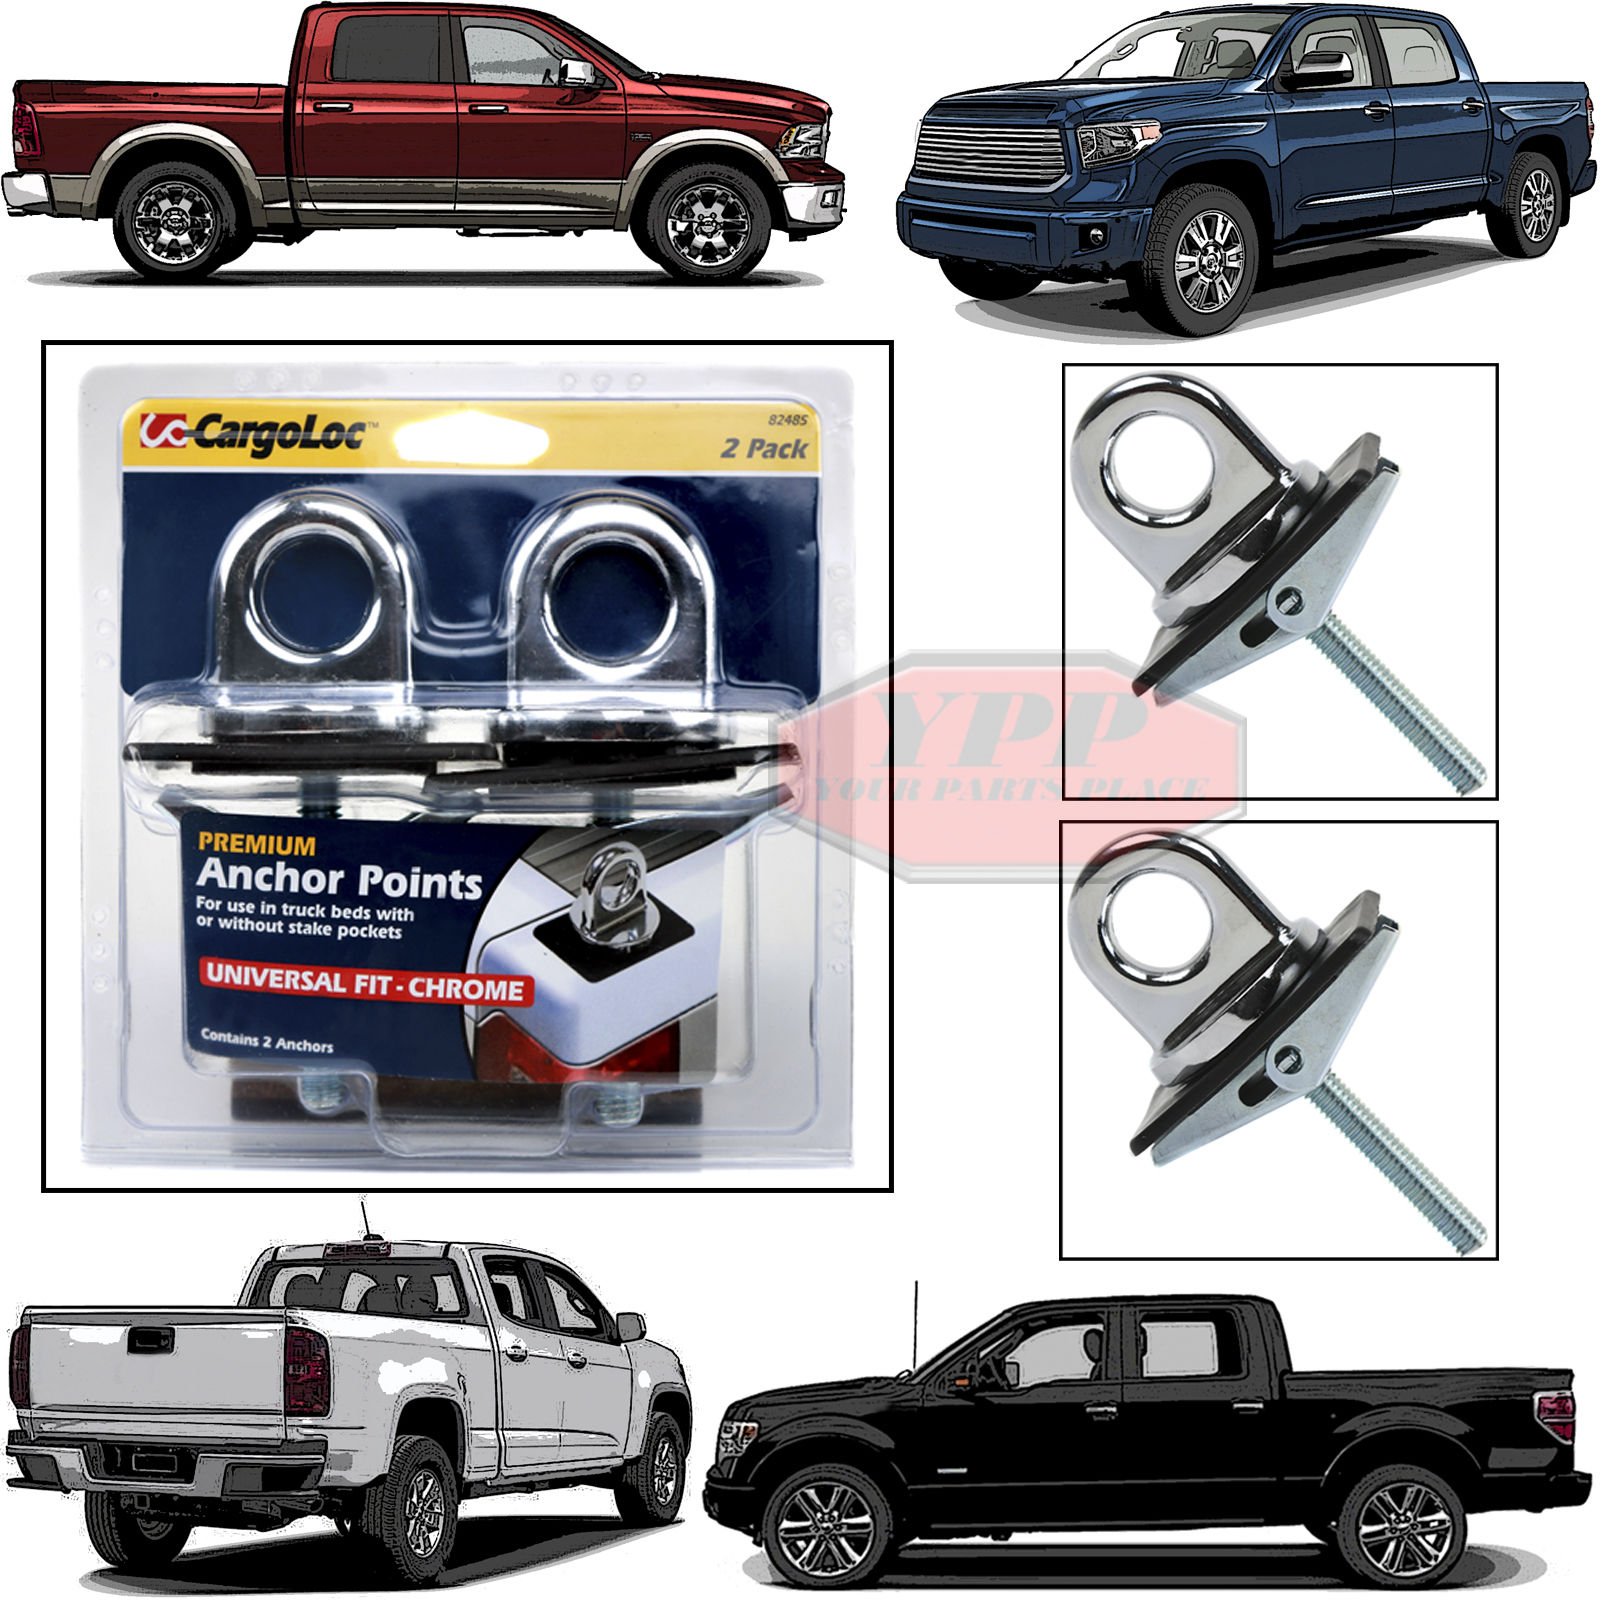 2 Pc Universal Fit Truck Bed Anchor Chrome Plated Tie Down Loop Hooks Pickup Bed